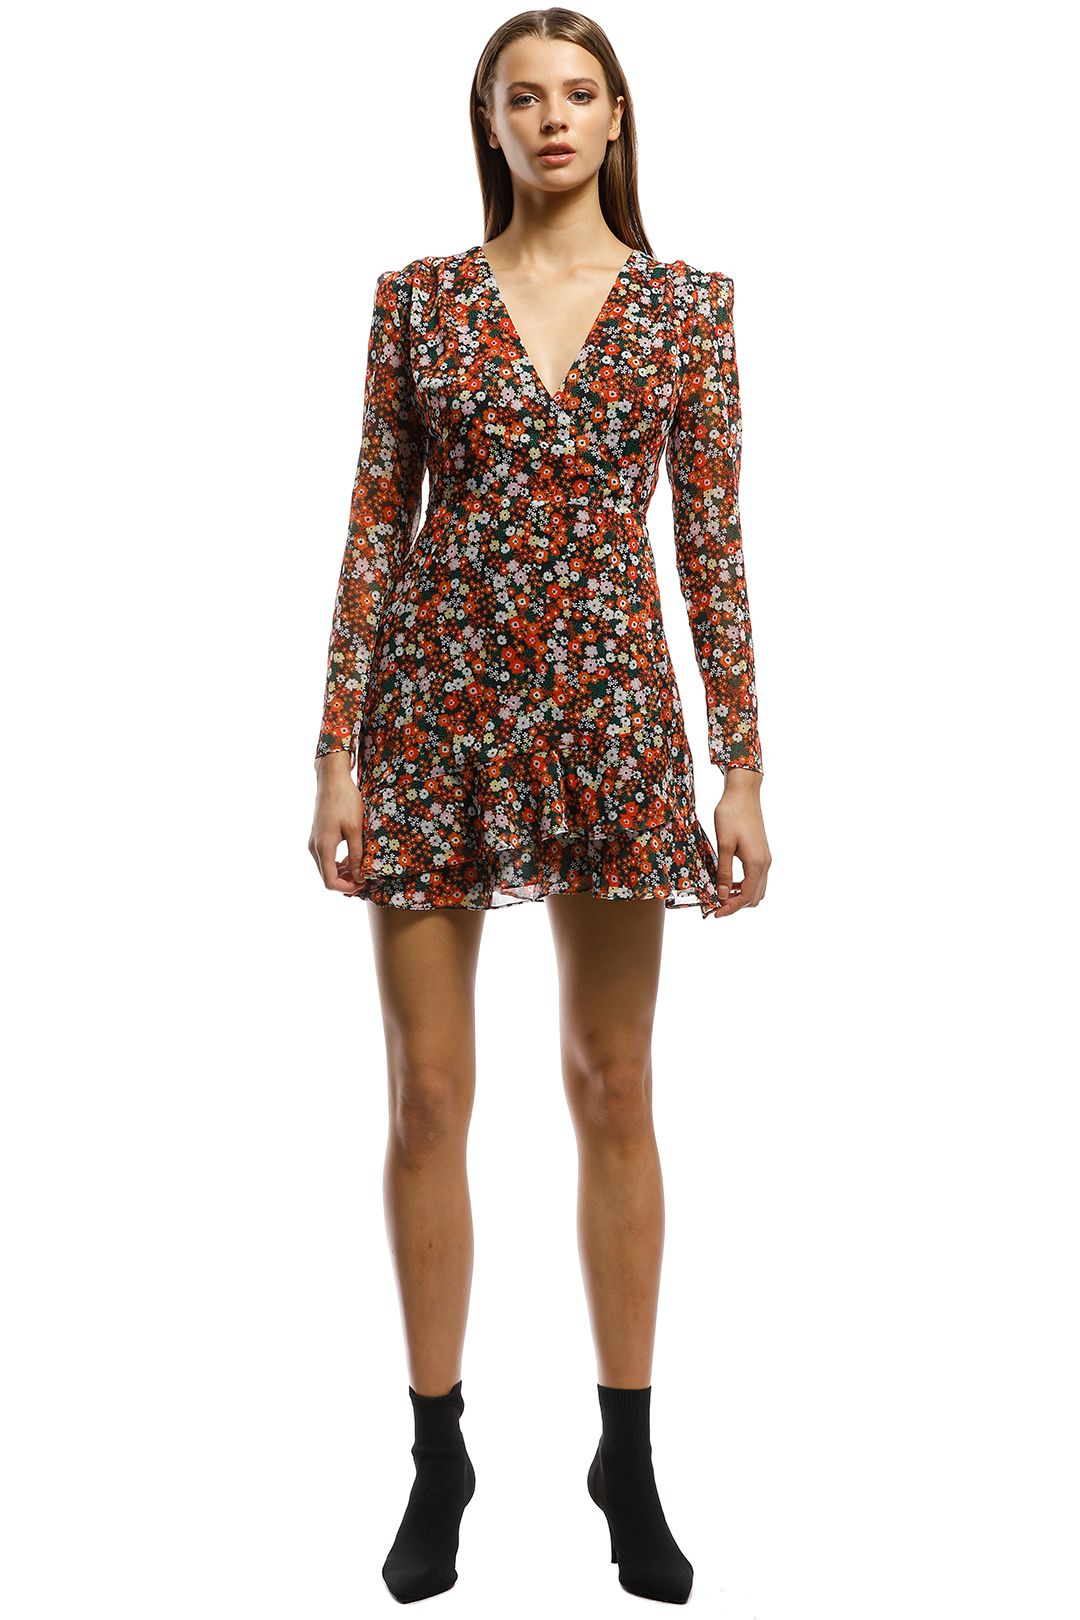 The East Order - Harlie LS Mini Dress - Multi -  Front